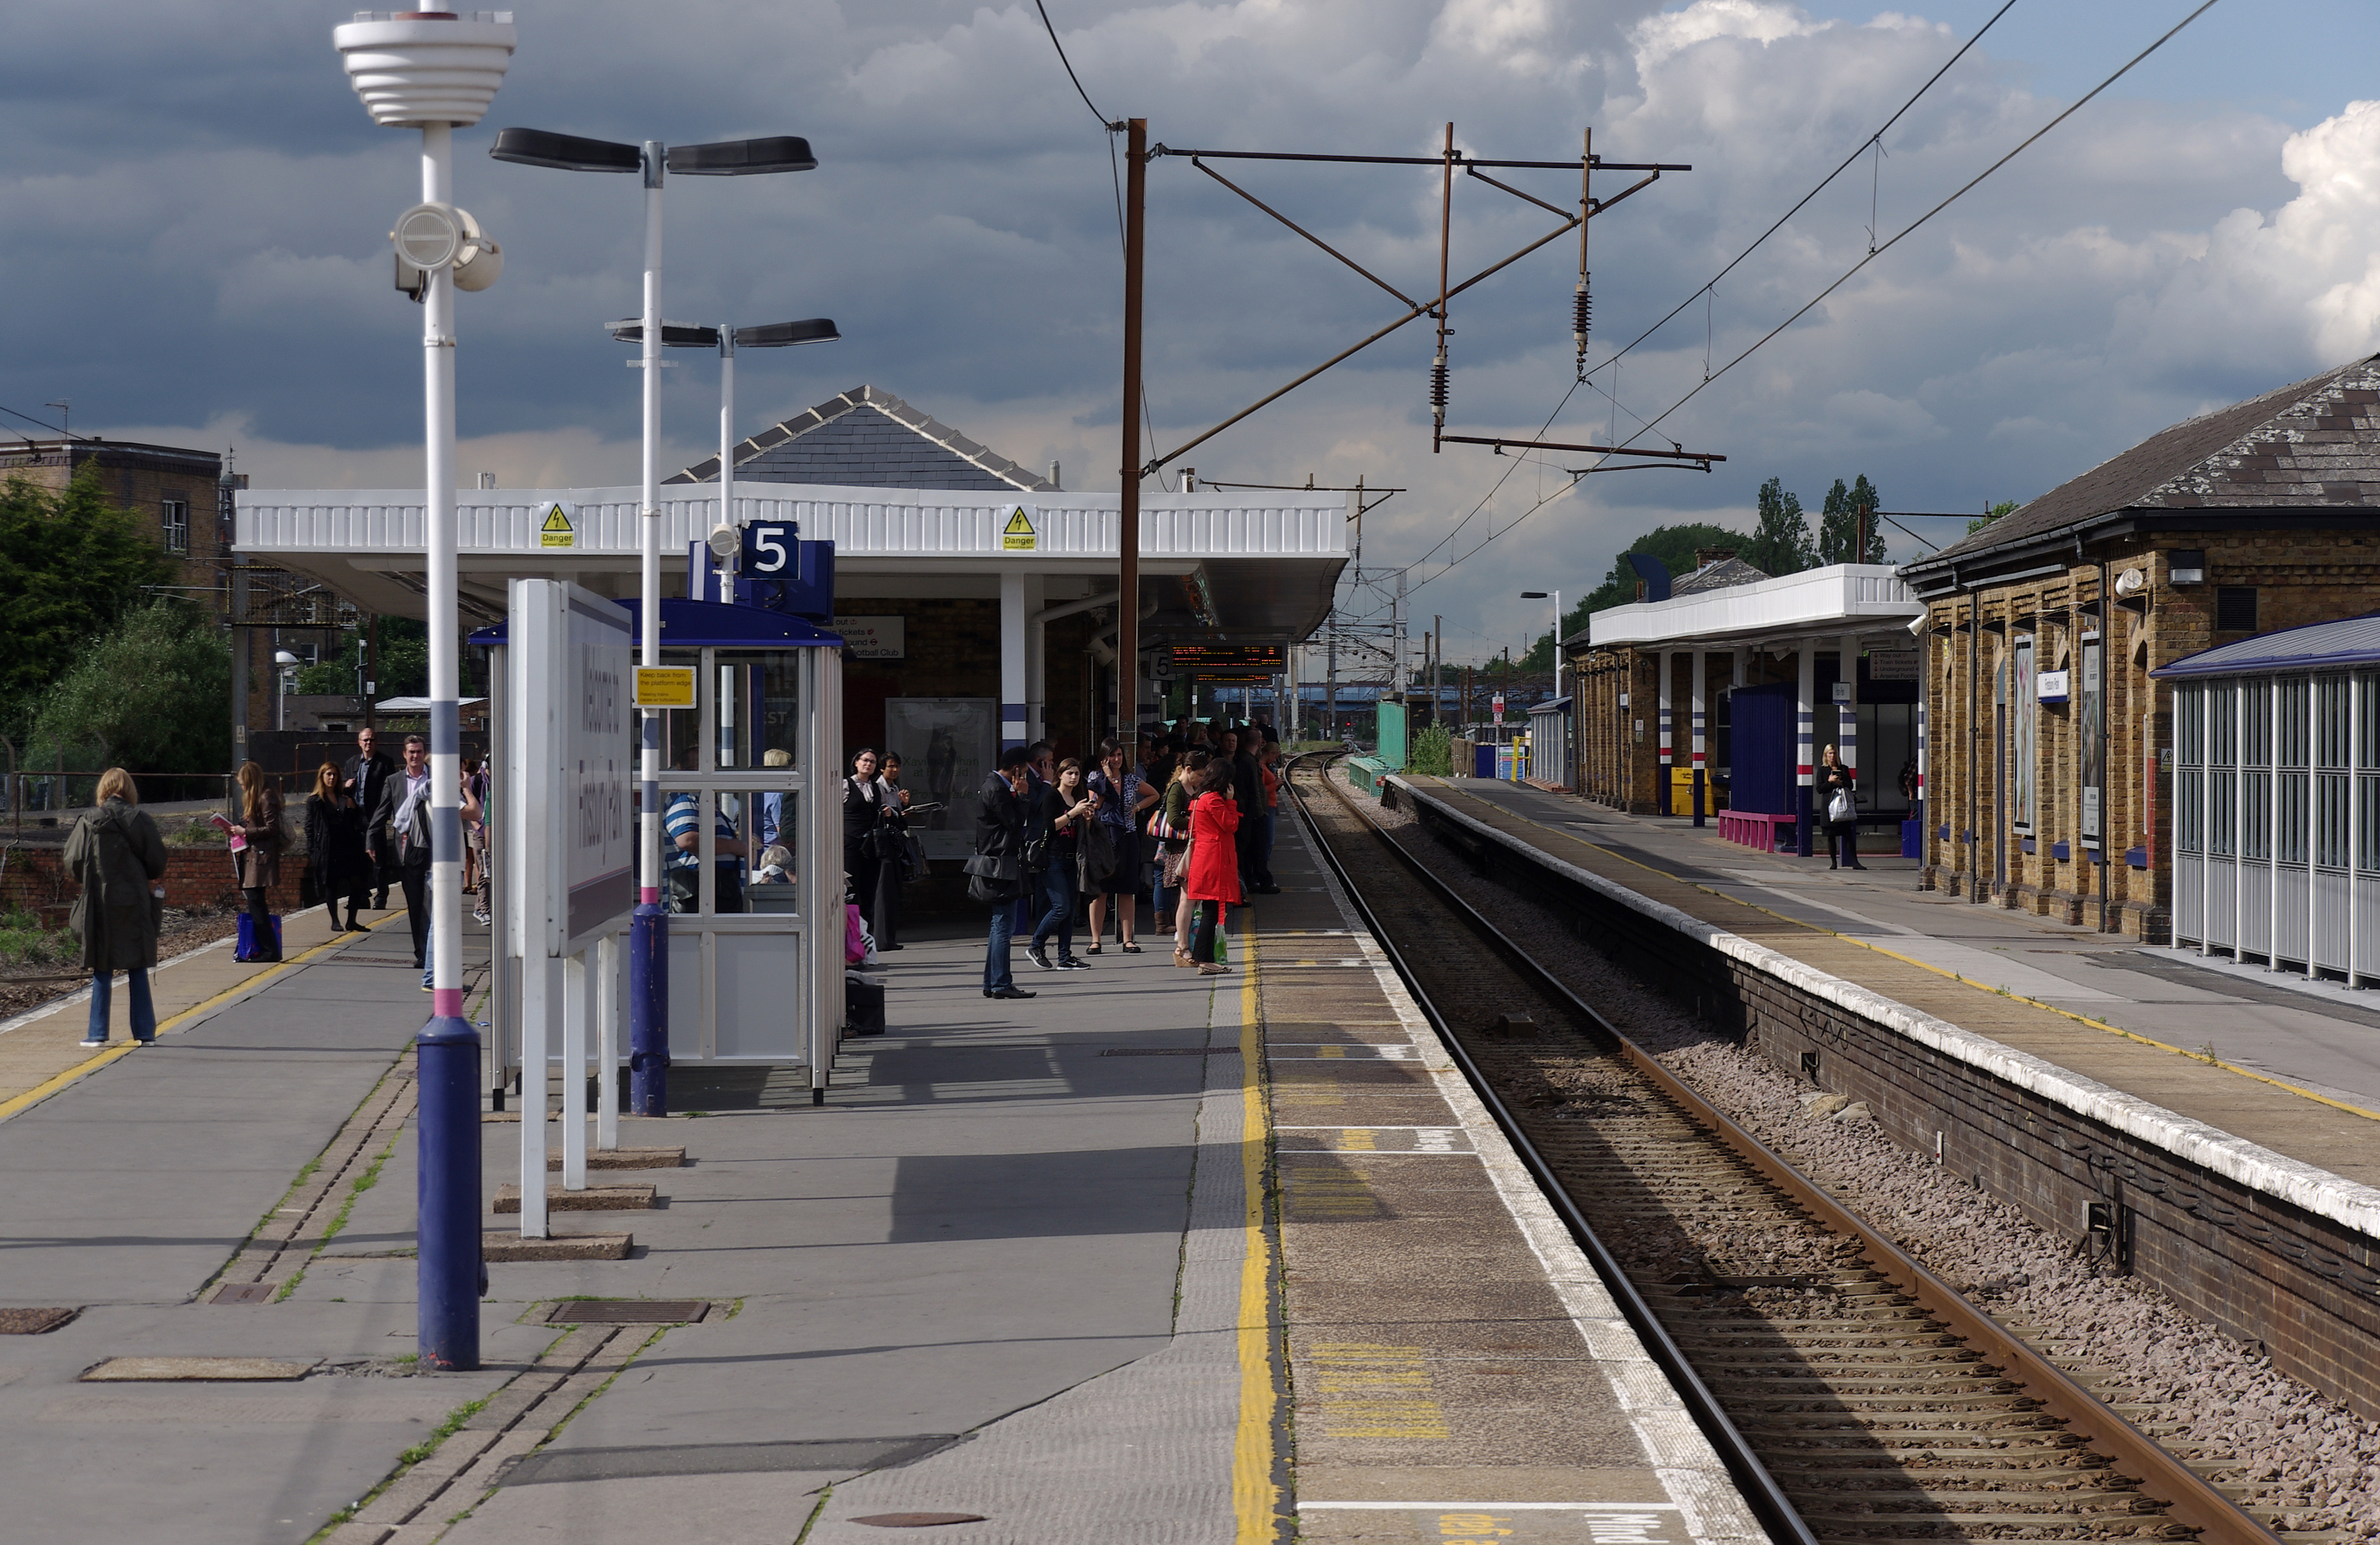 Finsbury park train station